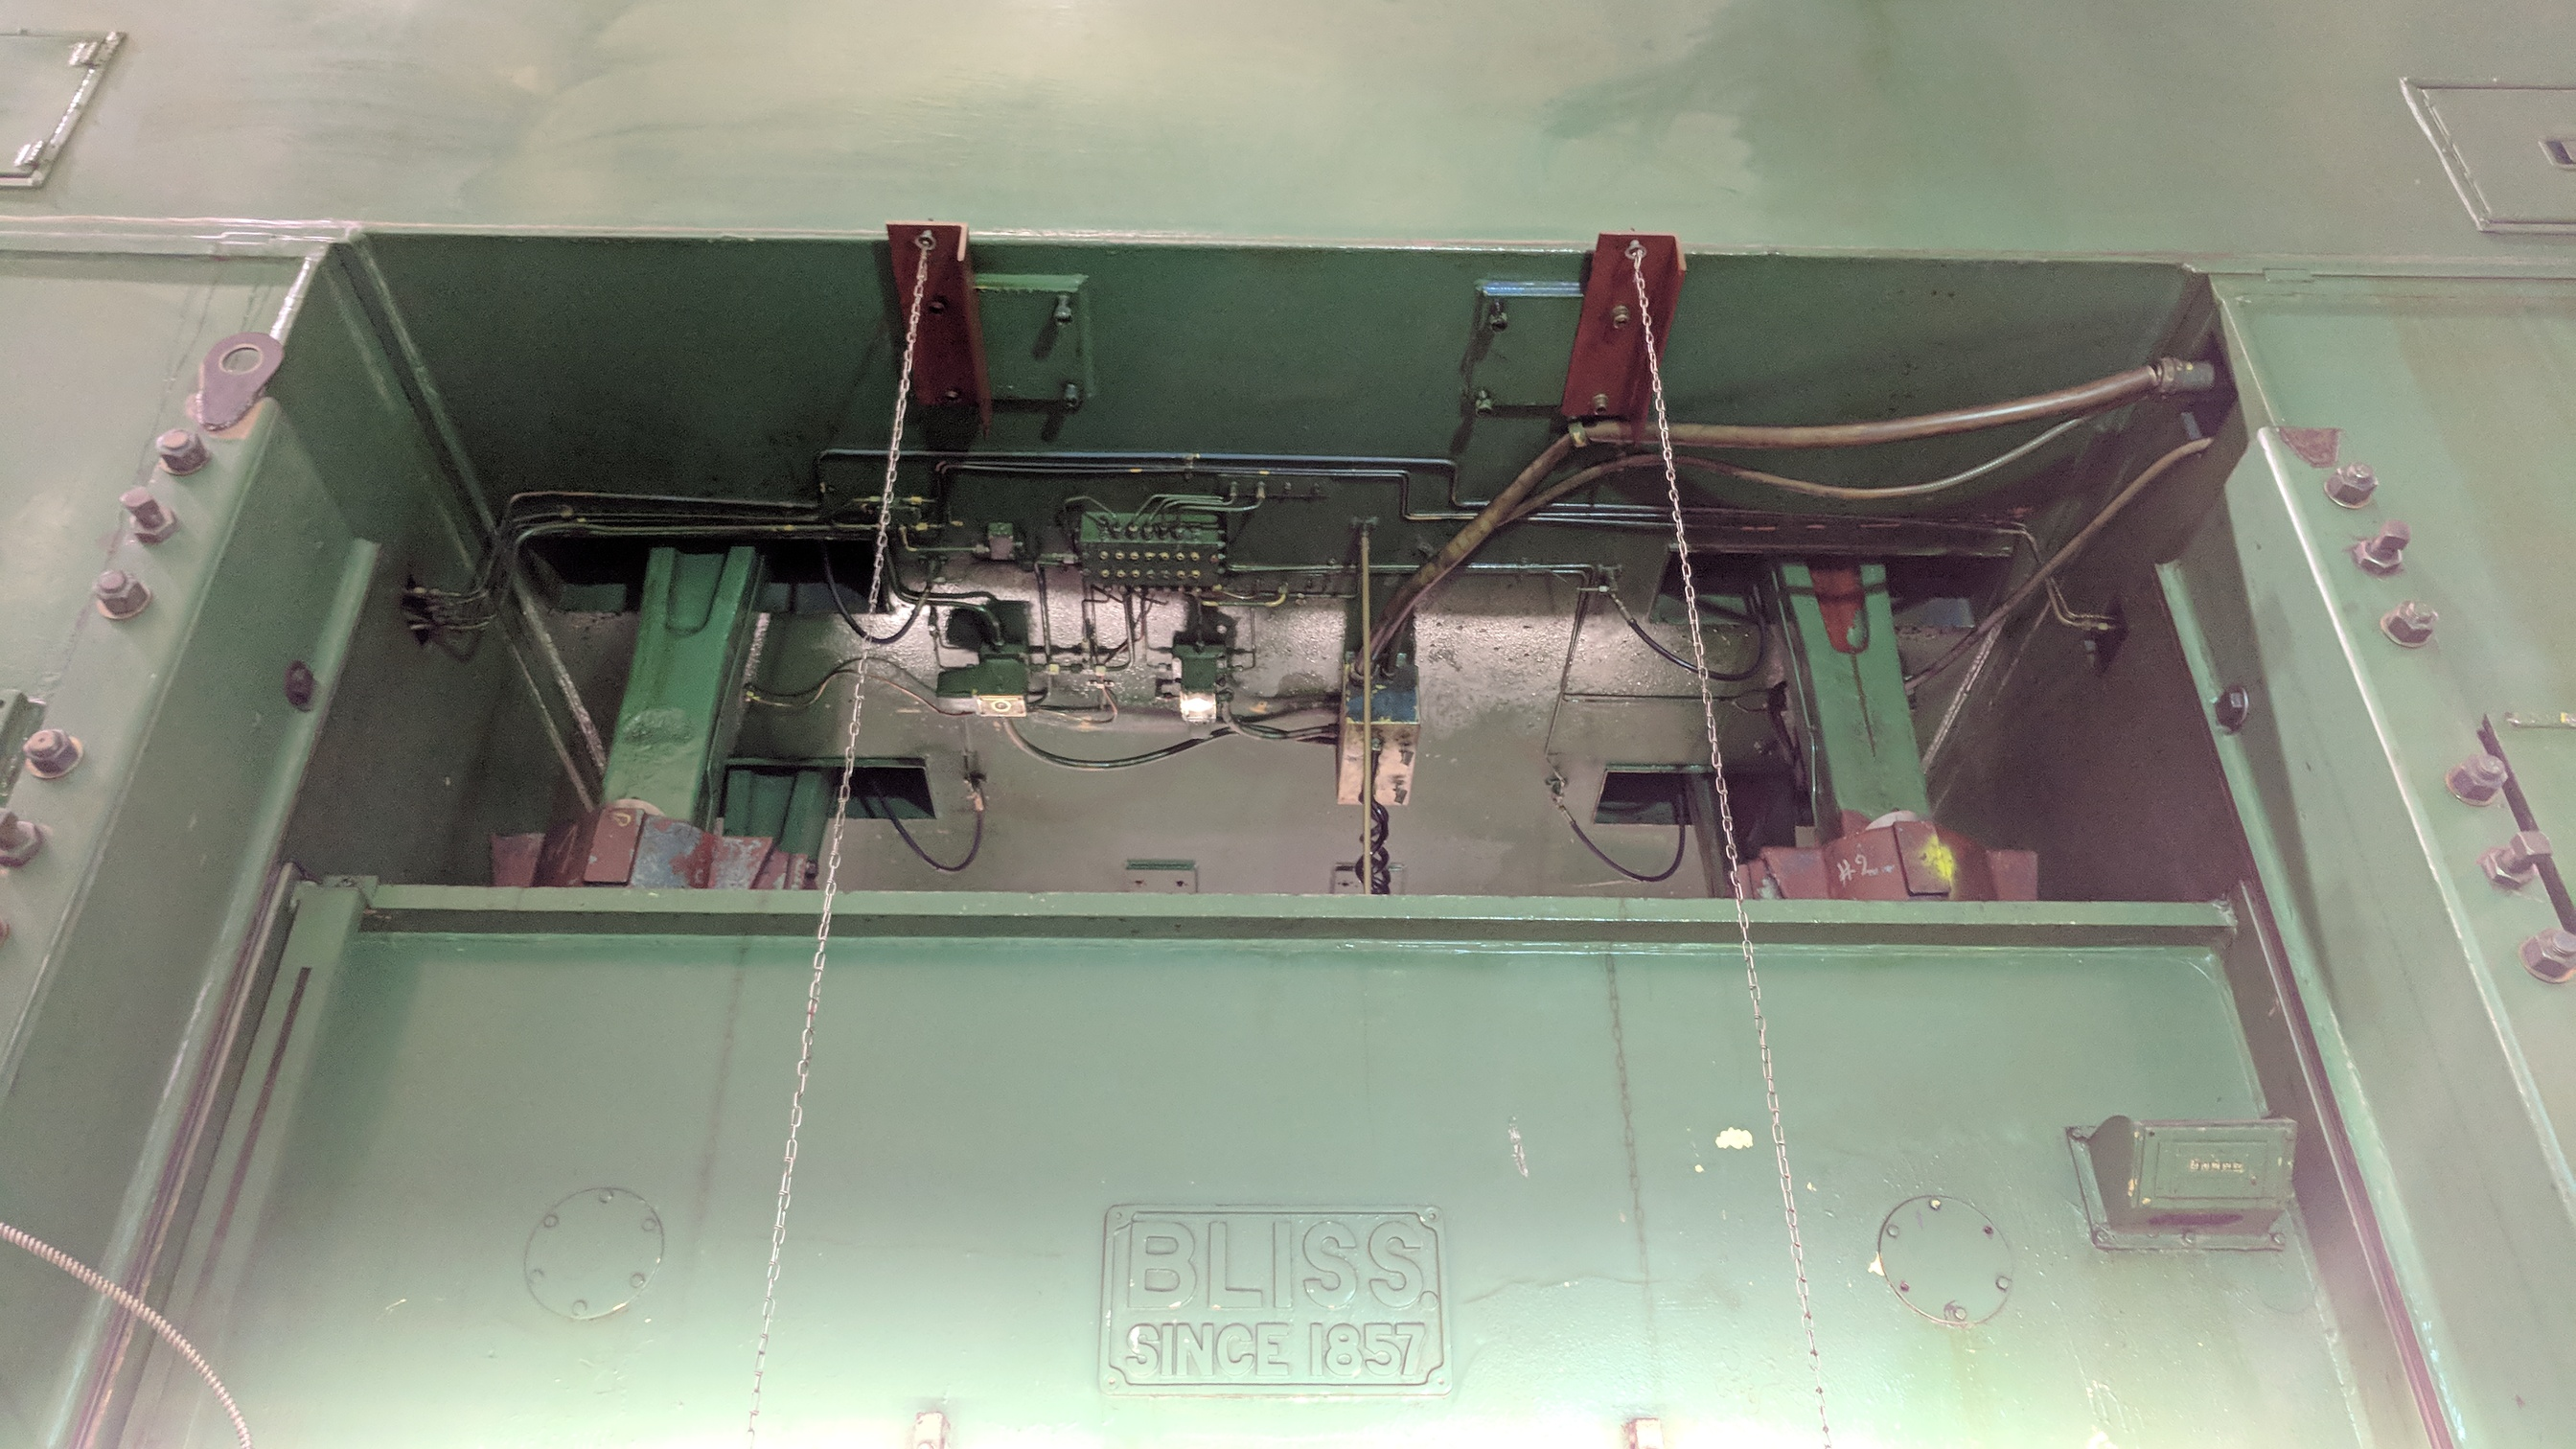 """BLISS SE4-600-108X72 600 TON CAPACITY STRAIGHT SIDE PRESS WITH MAGELIS 2000 PLC CONTROL, 108""""X72"""" - Image 10 of 21"""